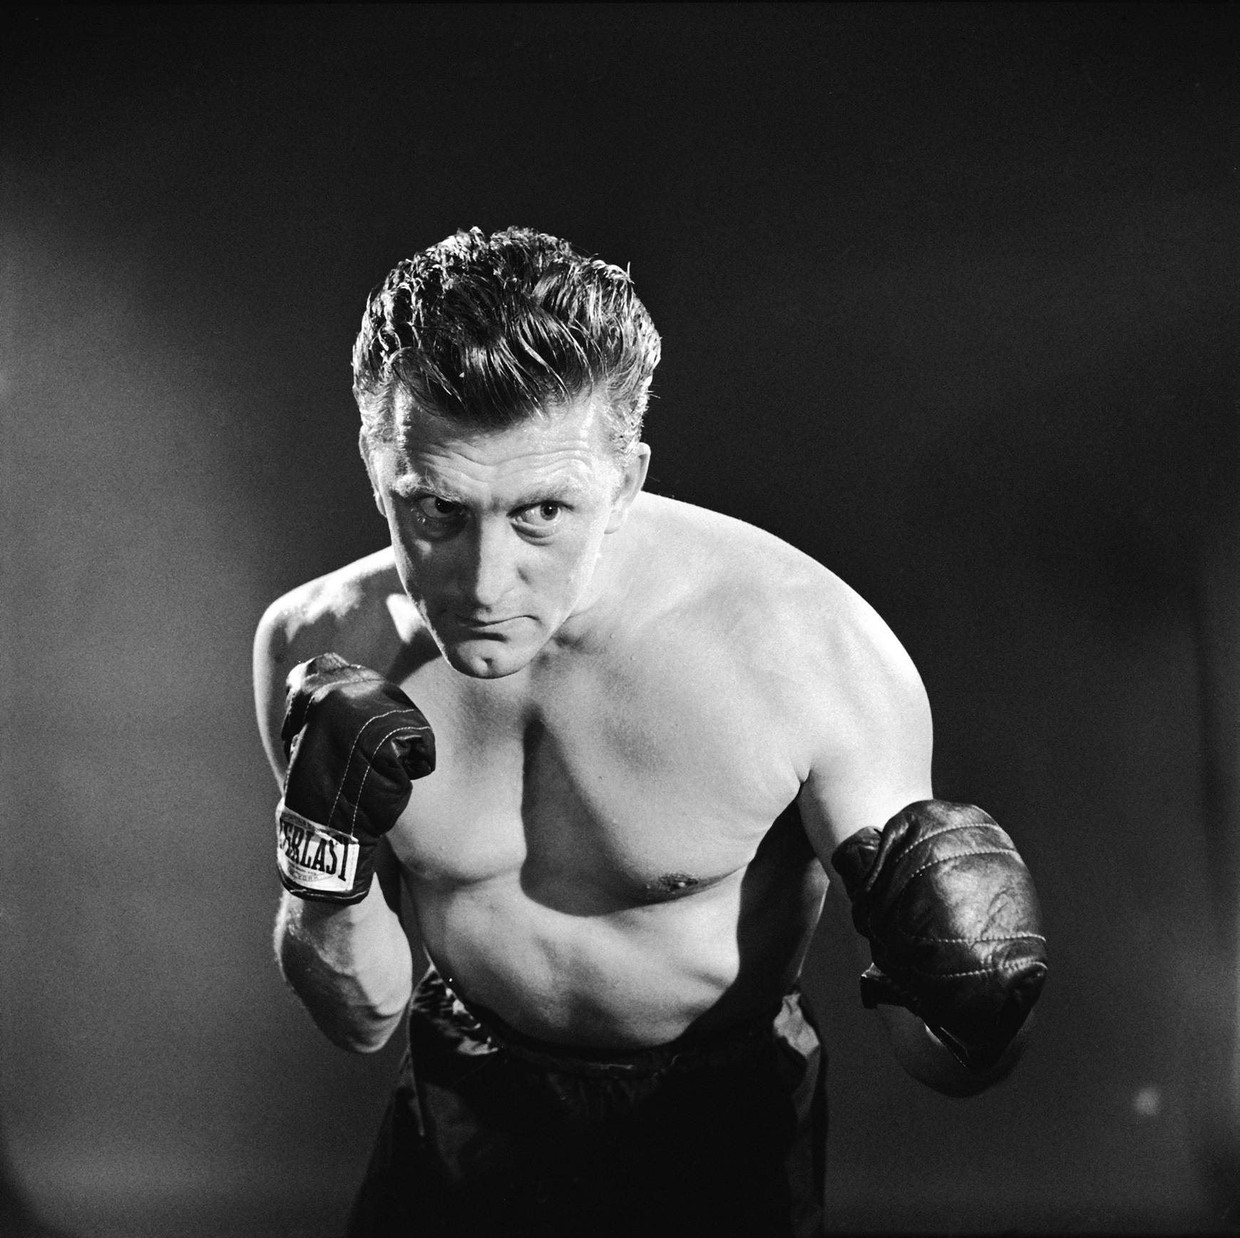 Kirk Douglas in 'Champion', zijn doorbraak, in 1949.